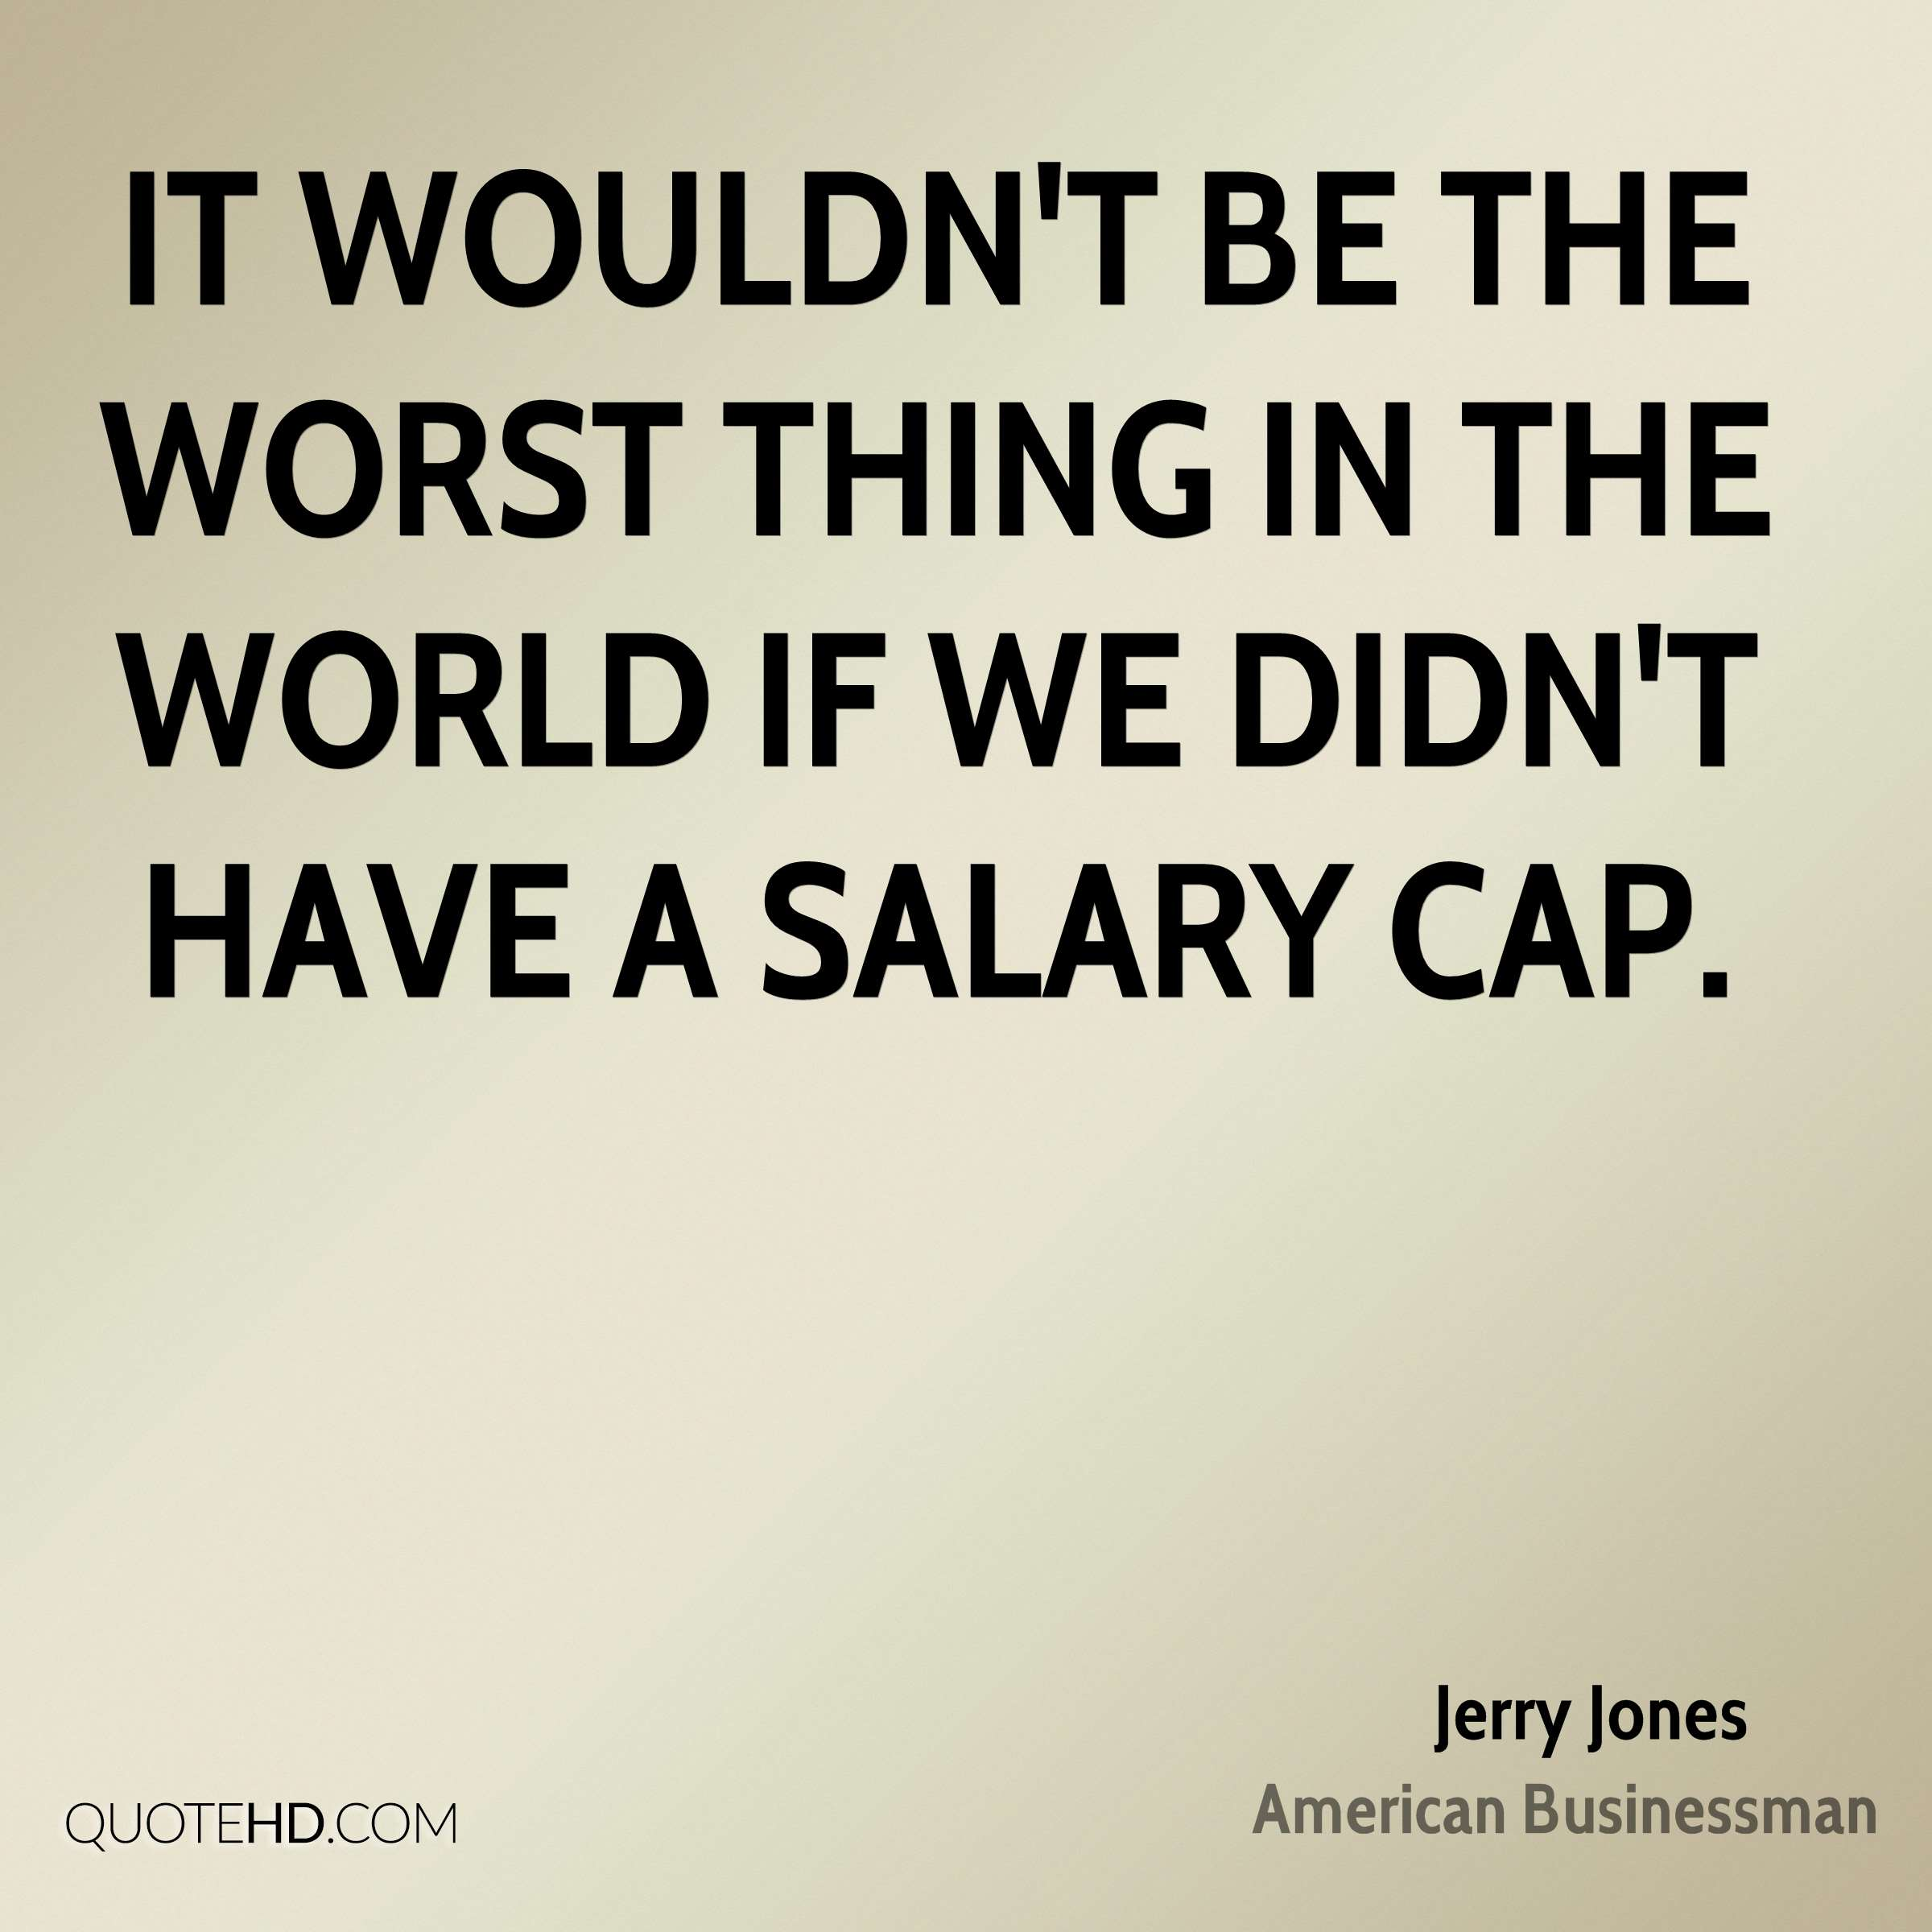 It wouldn't be the worst thing in the world if we didn't have a salary cap.